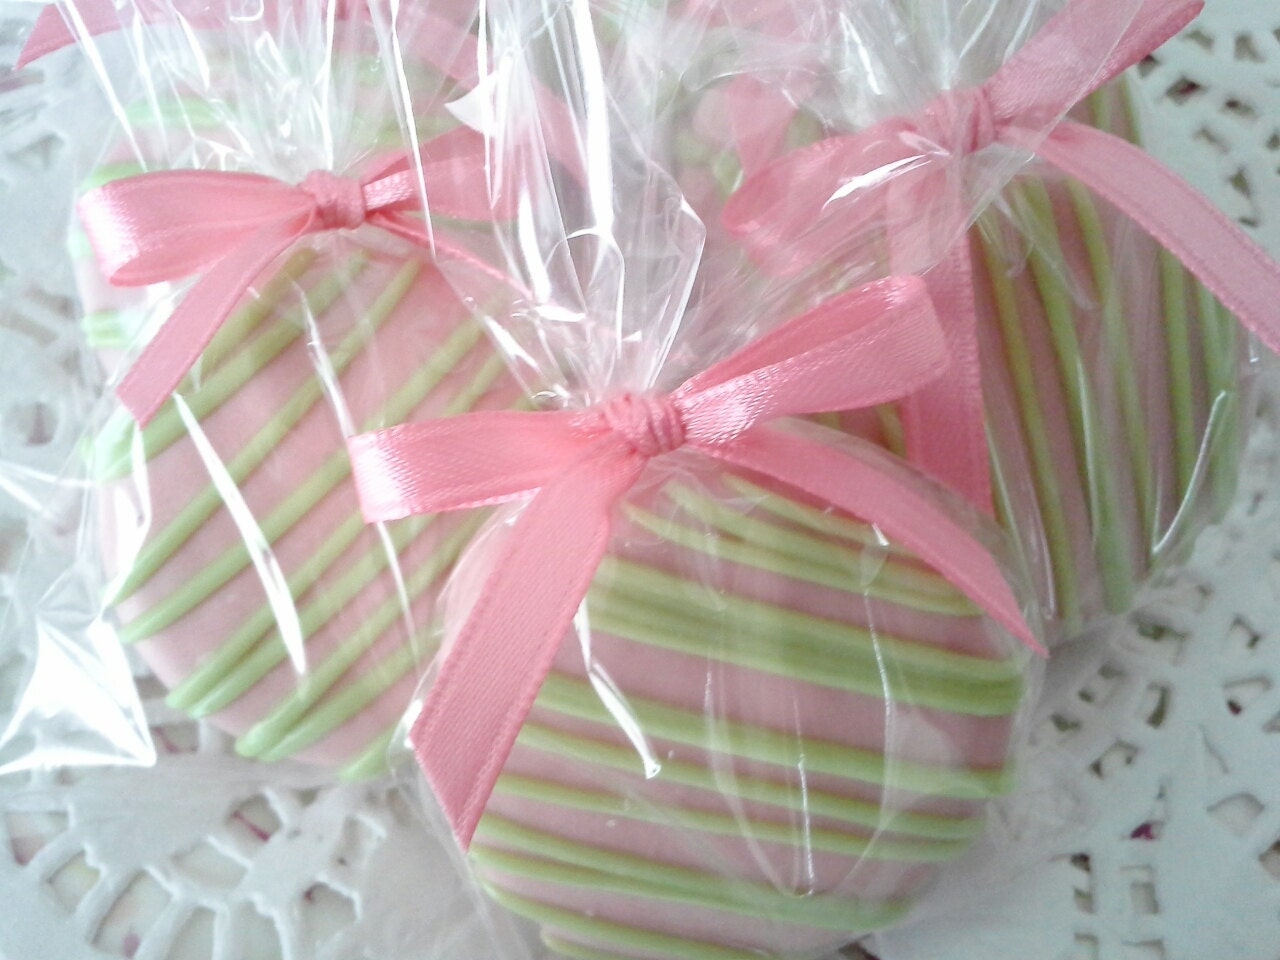 Wedding World Edible Wedding Favors Wedding Favors Edible Popular Items For Edible  Favor On Etsy Salsuba